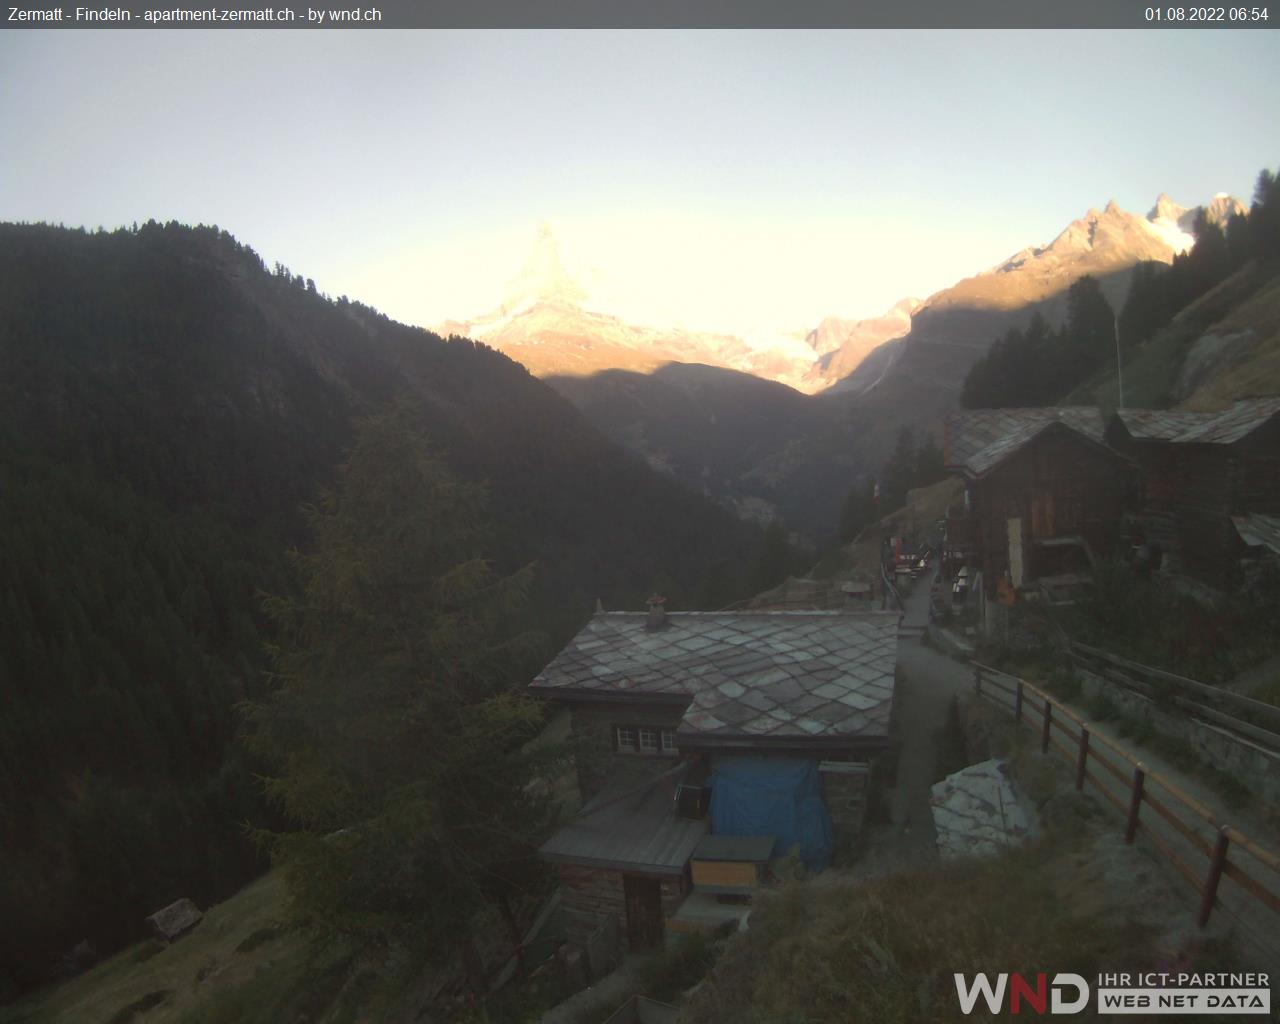 Findeln (2,050 m) webcam